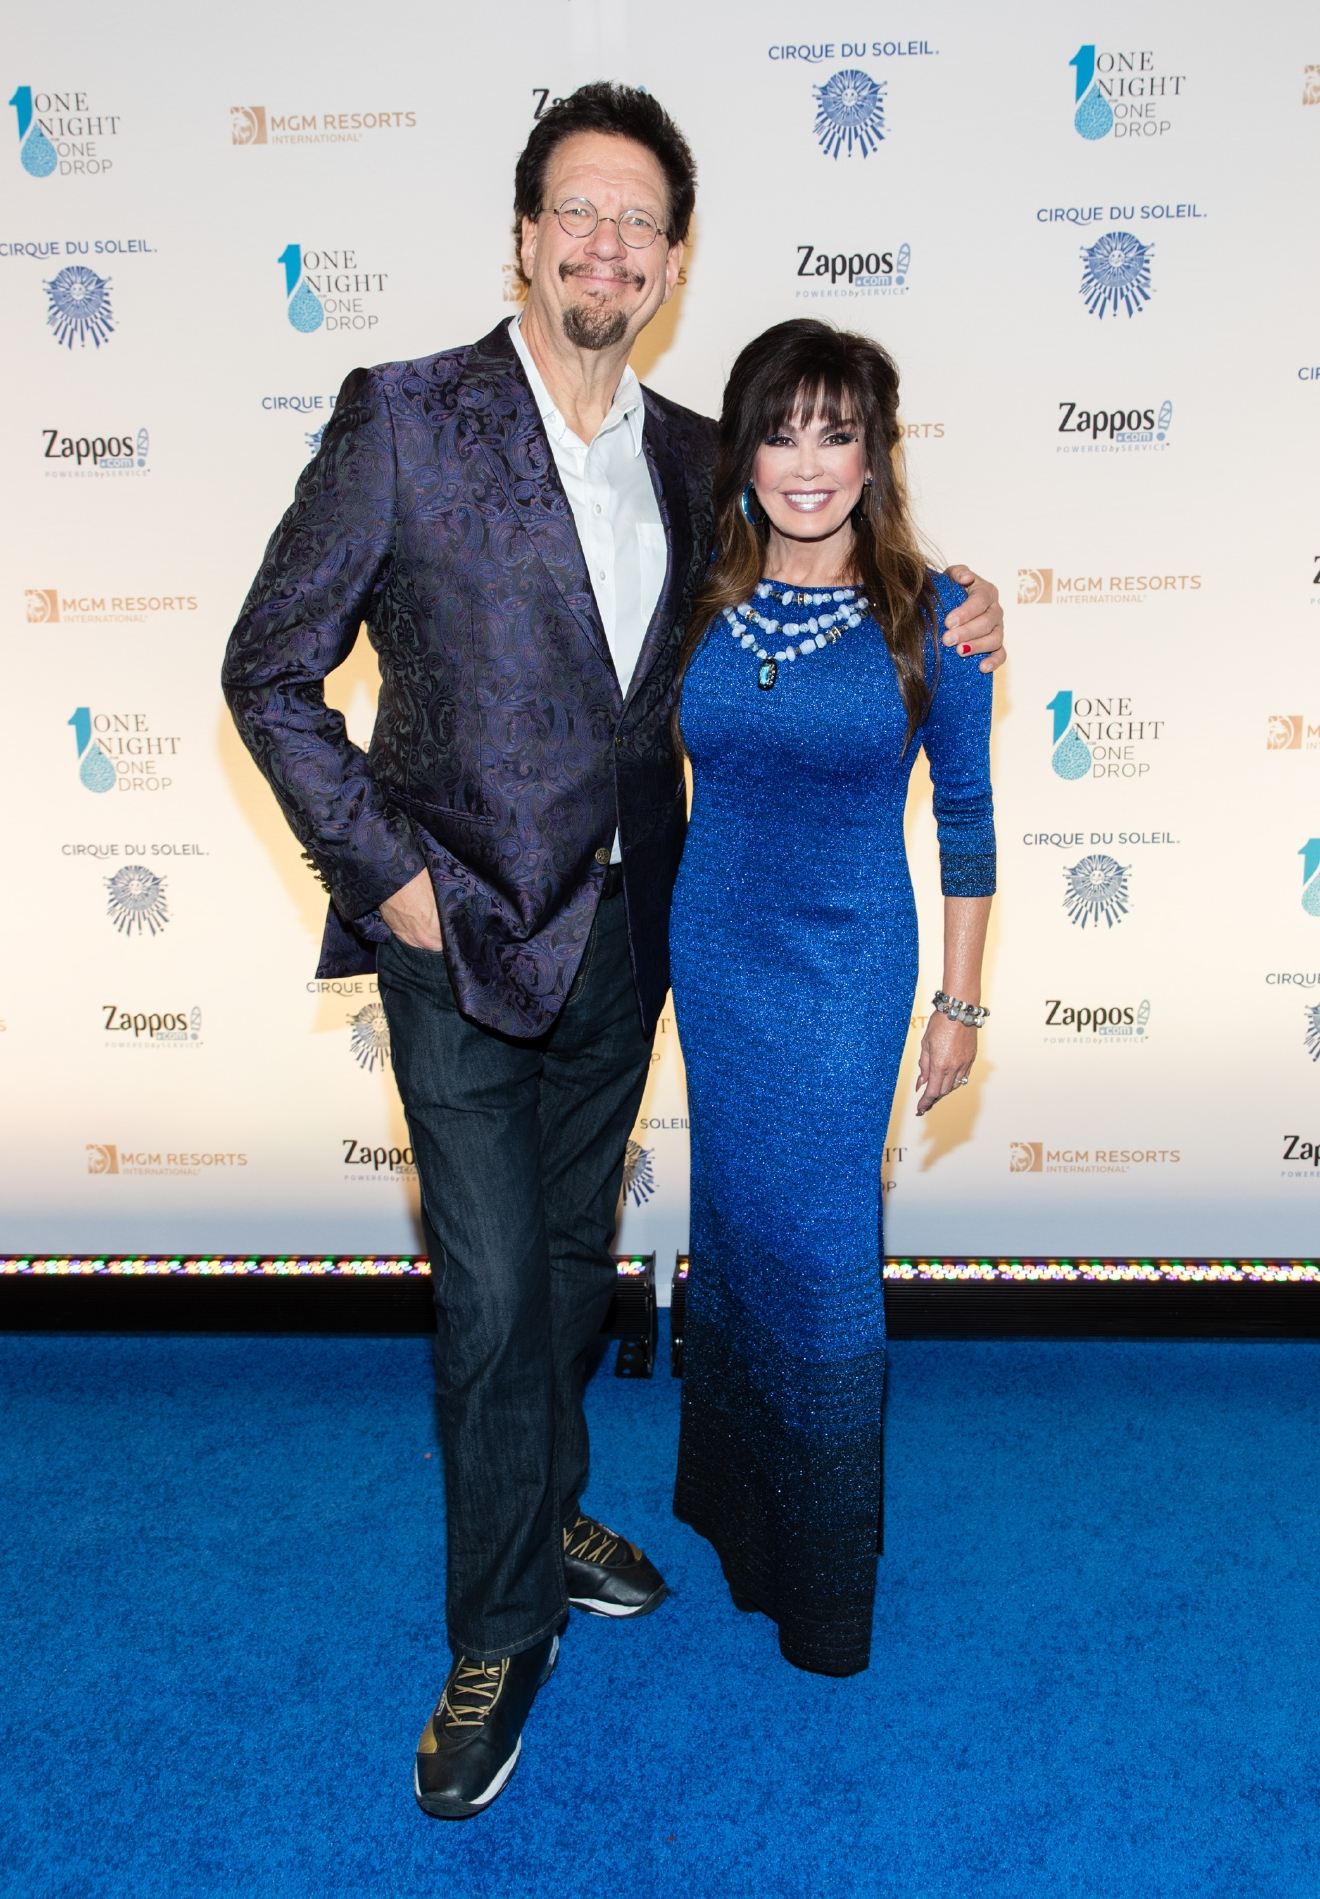 Penn Jillette and Marie Osmond at One Night for One Drop 2017. (Photo courtesy of Erik Kabik/ErikKabik.com)